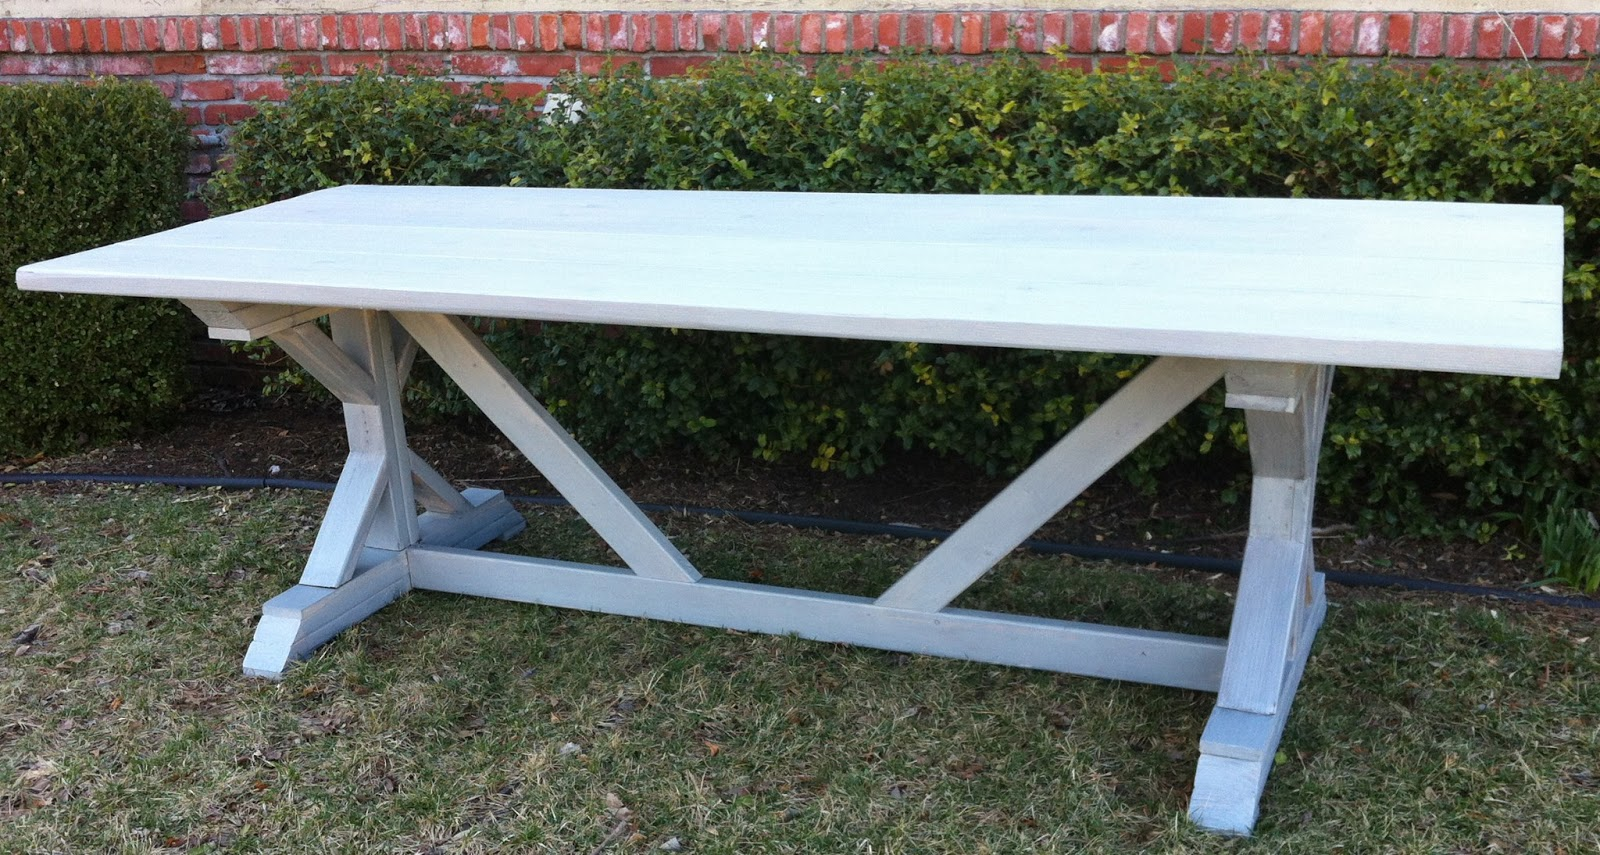 My New Outdoor Dining Table Build - Easy D-I-Y plans, Cost appx $130